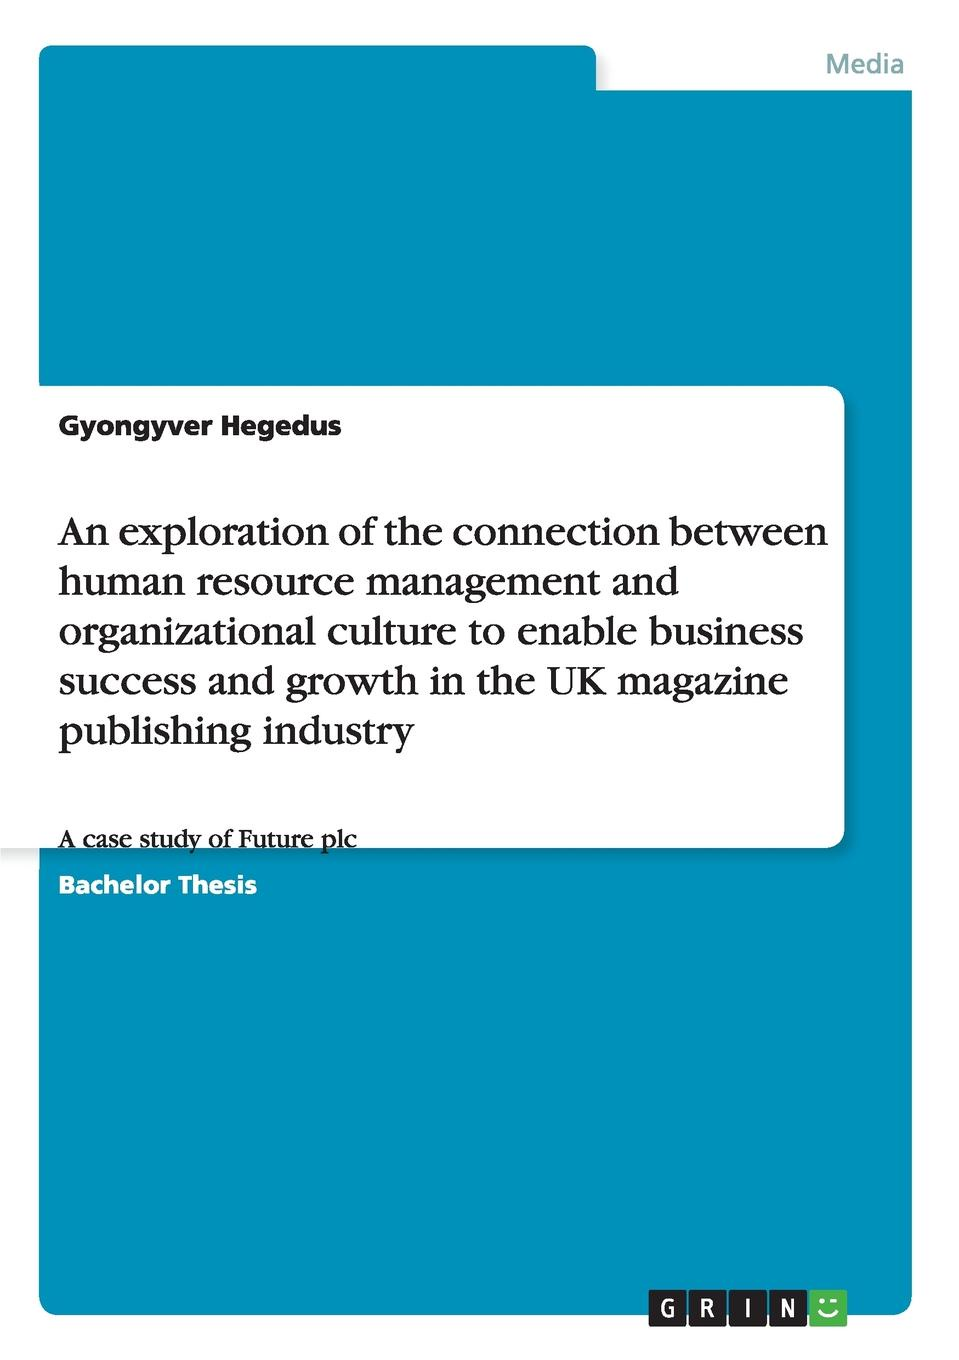 An-exploration-of-the-connection-between-human-resource-management-and-organizational-culture-to-enable-business-success-and-growth-in-the-UK-magazine